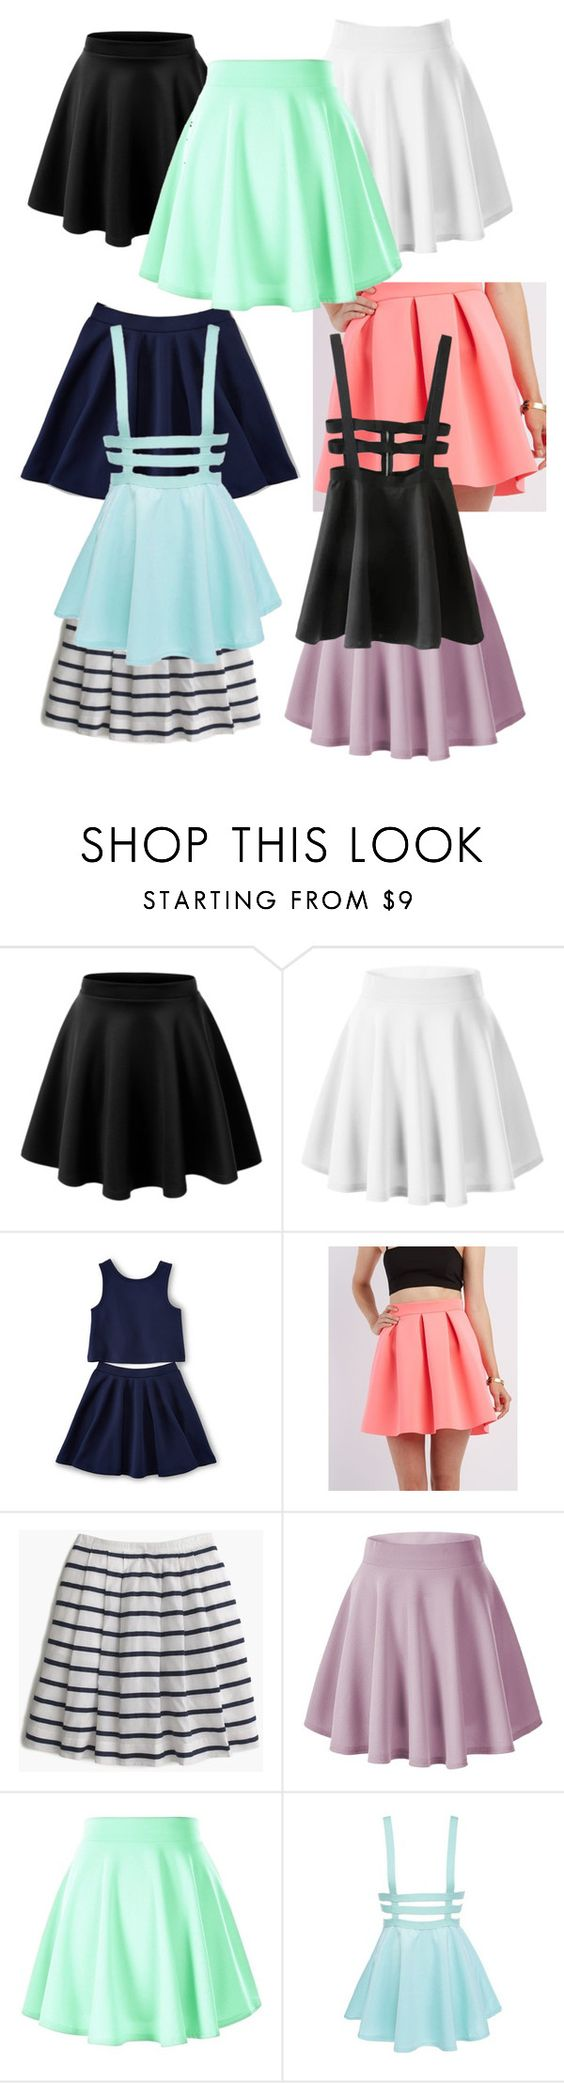 """""""IGNORE!"""" by one-of-those-nights ❤ liked on Polyvore featuring Charlotte Russe, J.Crew and WithChic"""